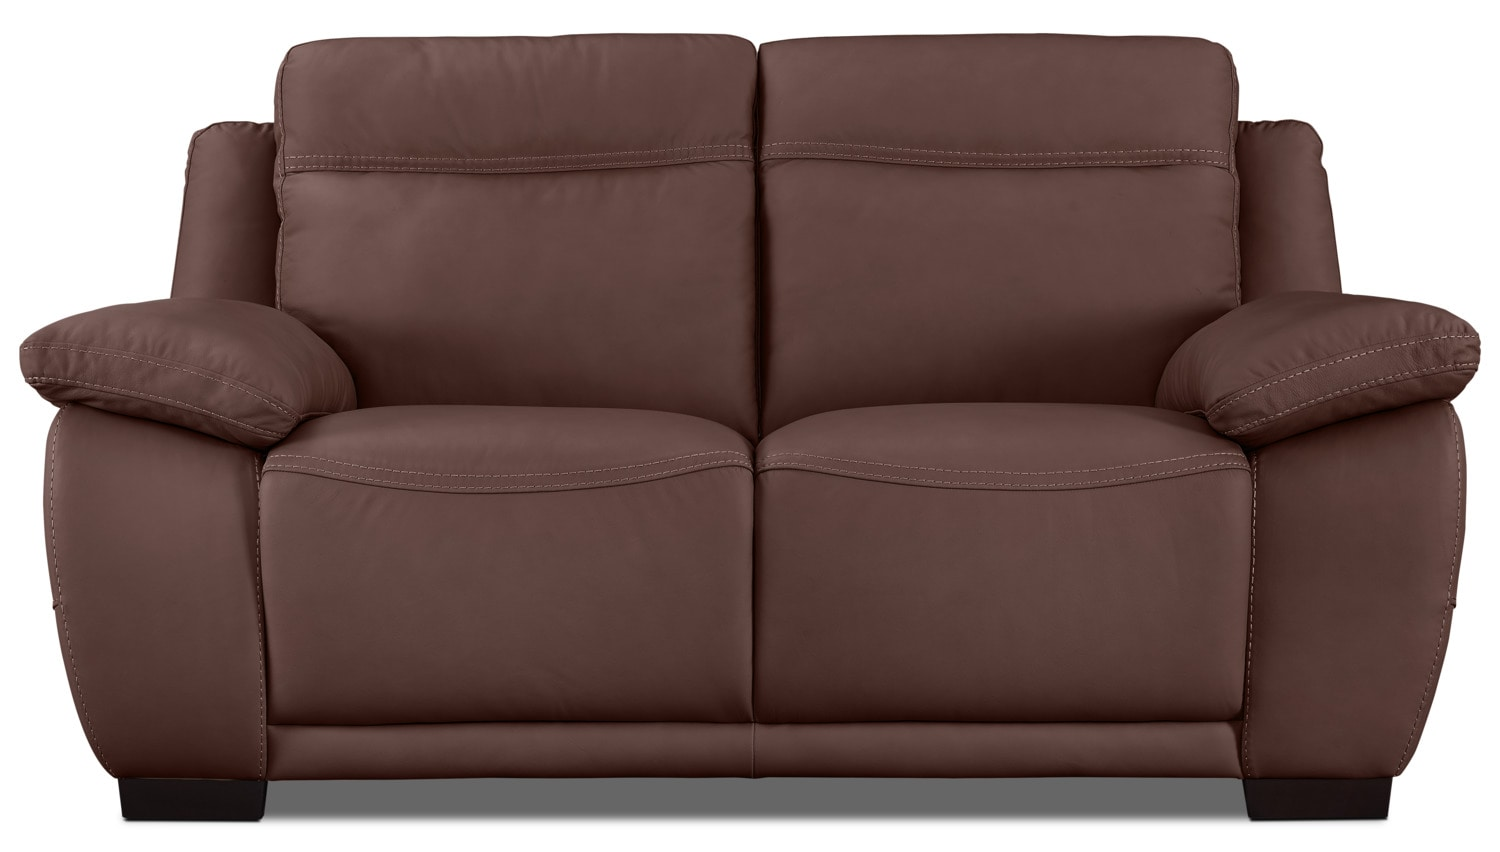 Natuzzi Editions B875 Genuine Leather Loveseat – Chestnut